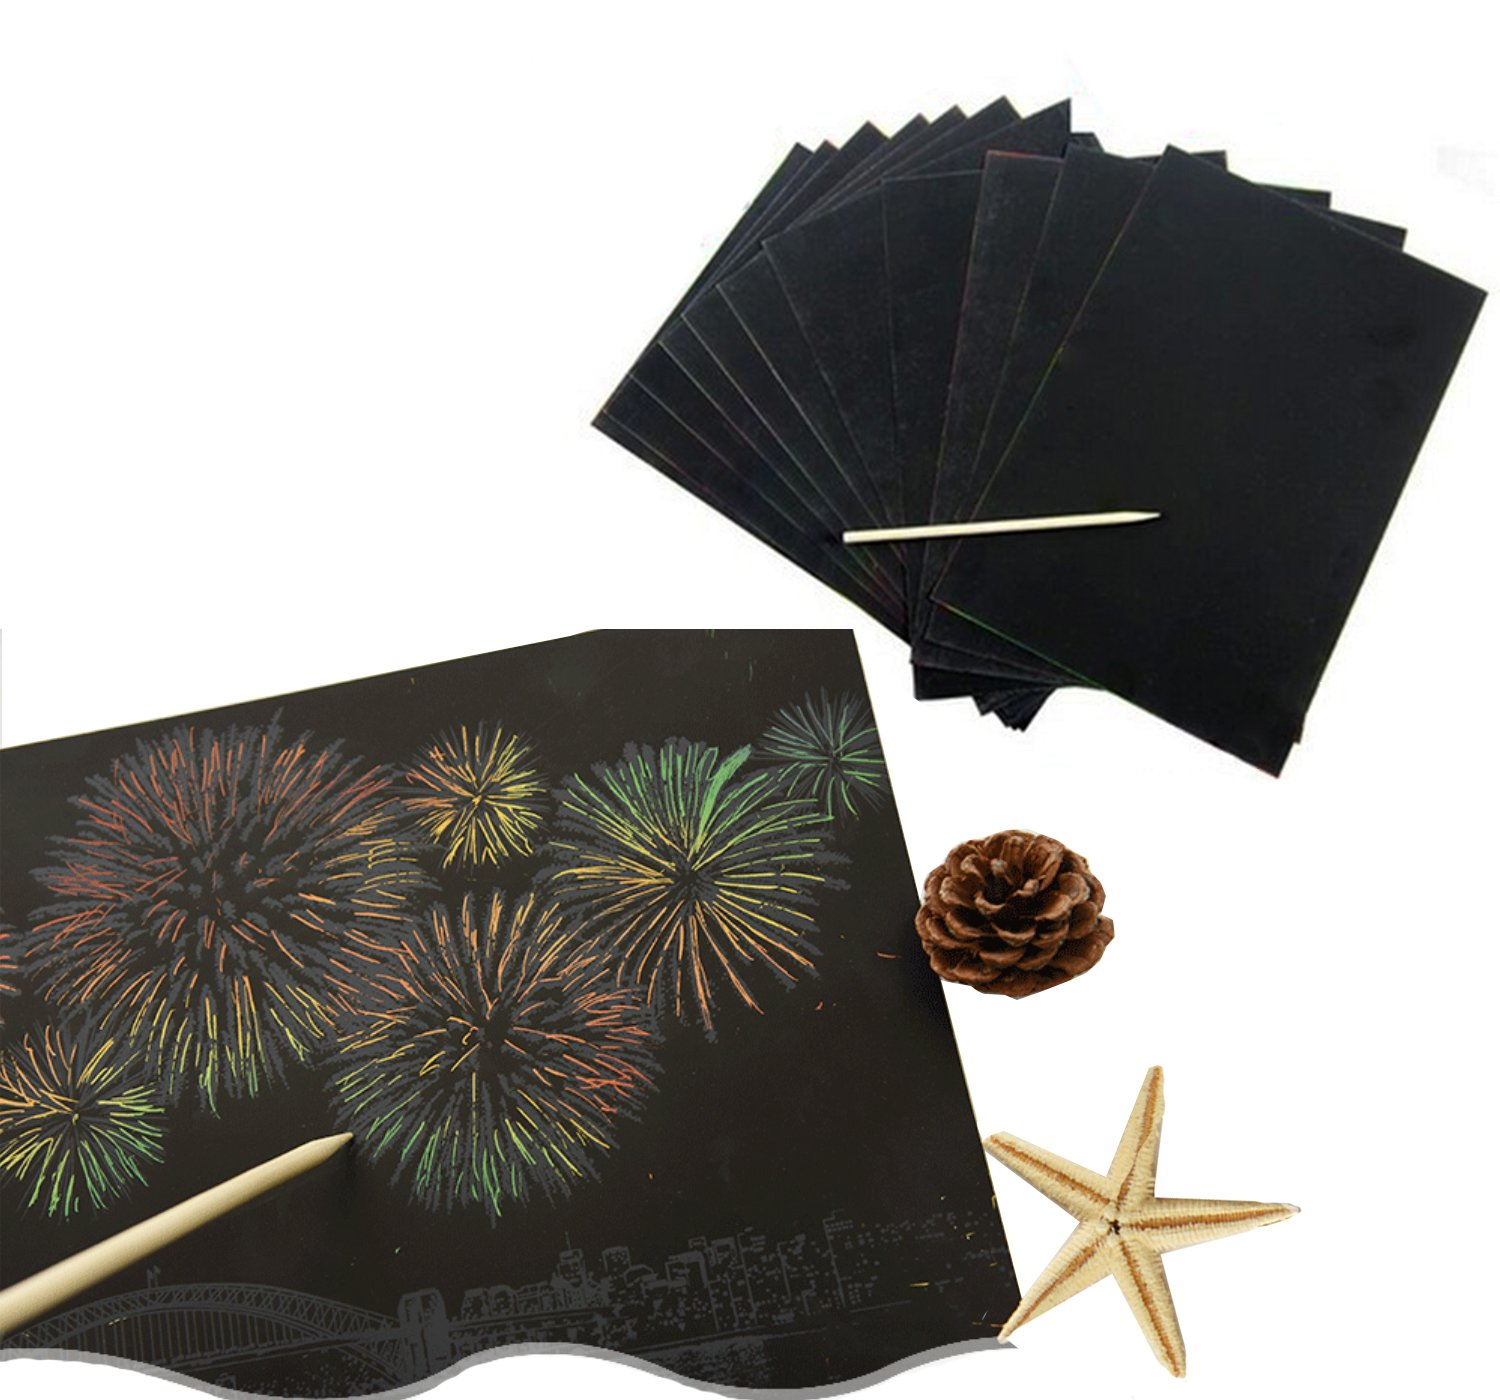 26PCS Kbraveo 20 Sheets 10x8 Inch Black Coated Scratch Papers Art Paper with 2 Pieces Wooden Stylus and 6 Pieces Drawing Stencils,Rainbow Scratch Paper For Kids